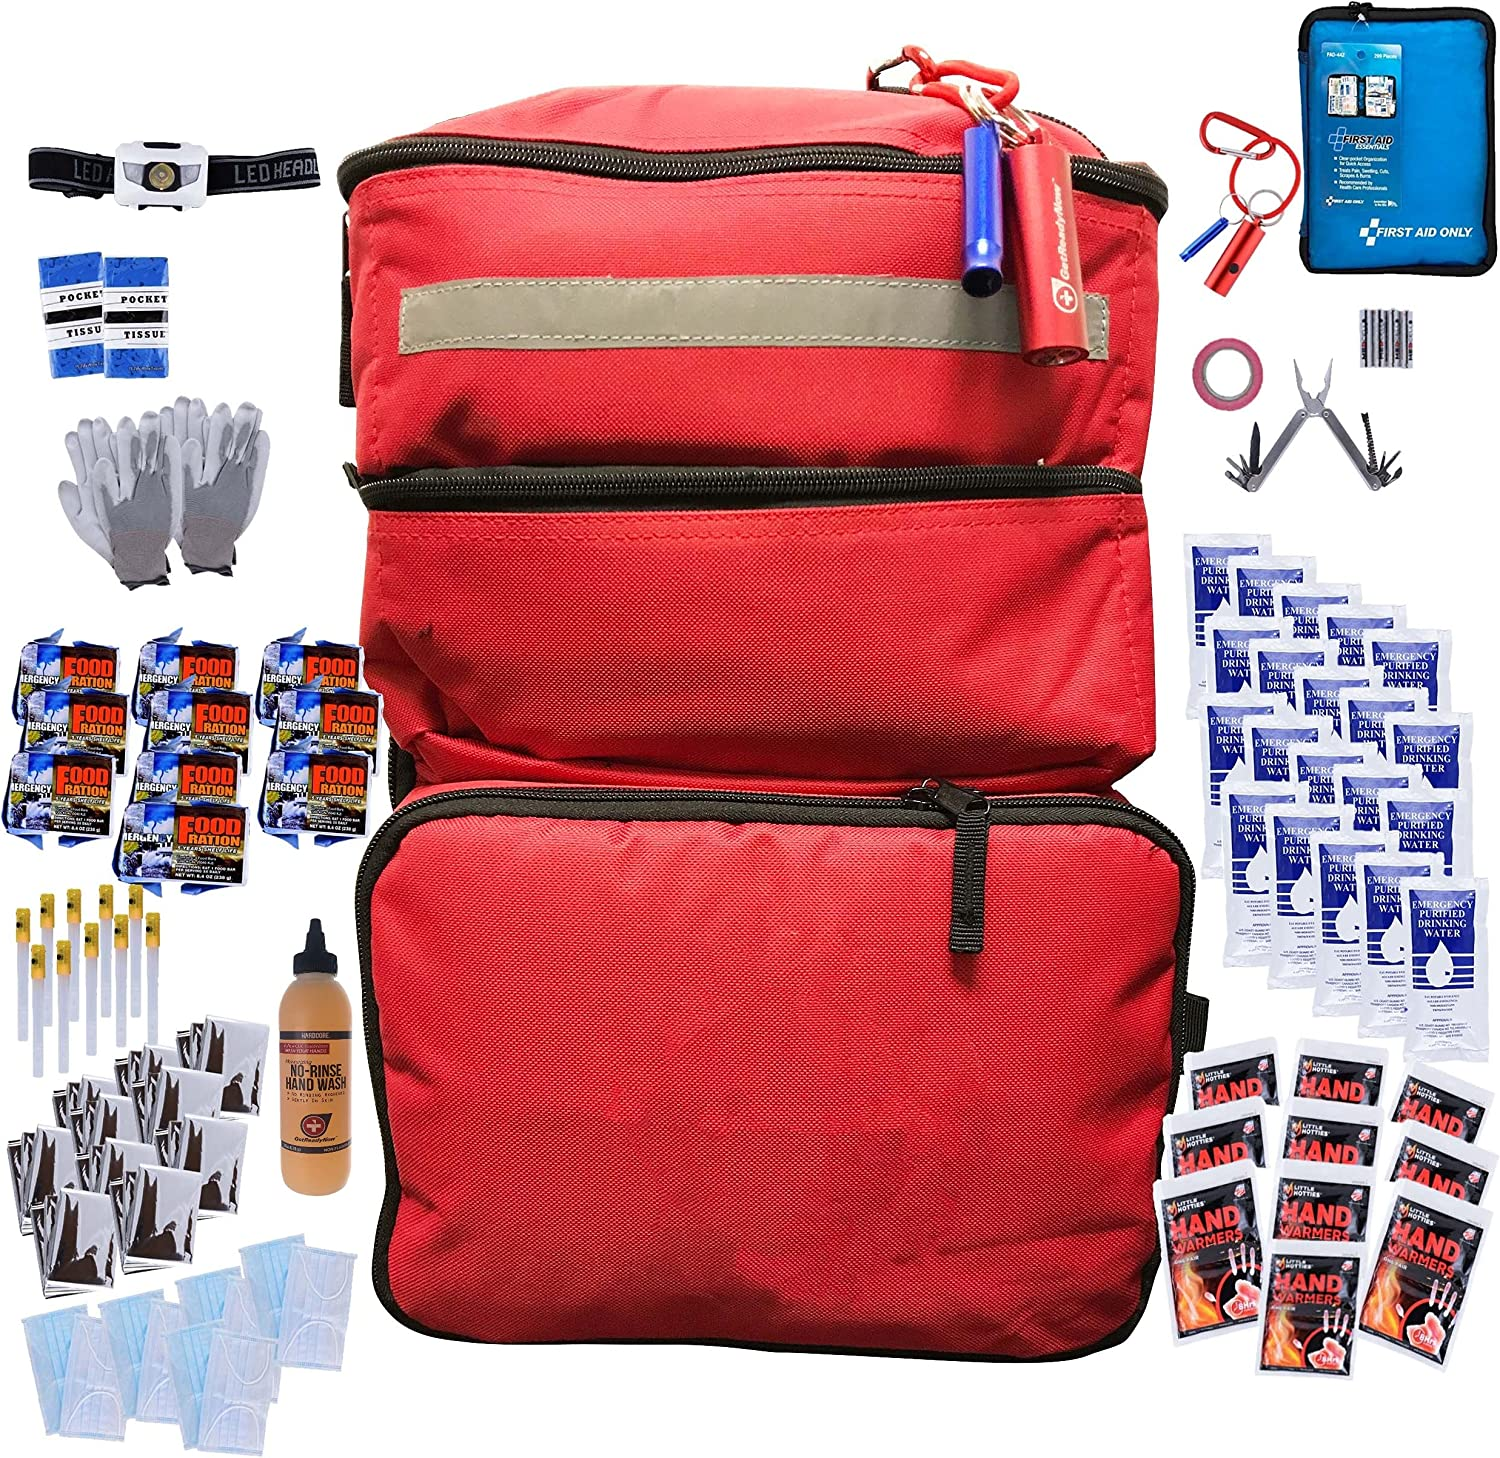 GETREADYNOW Popular popular Corporate or Family Large Pack Heavy Duty Max 55% OFF Water